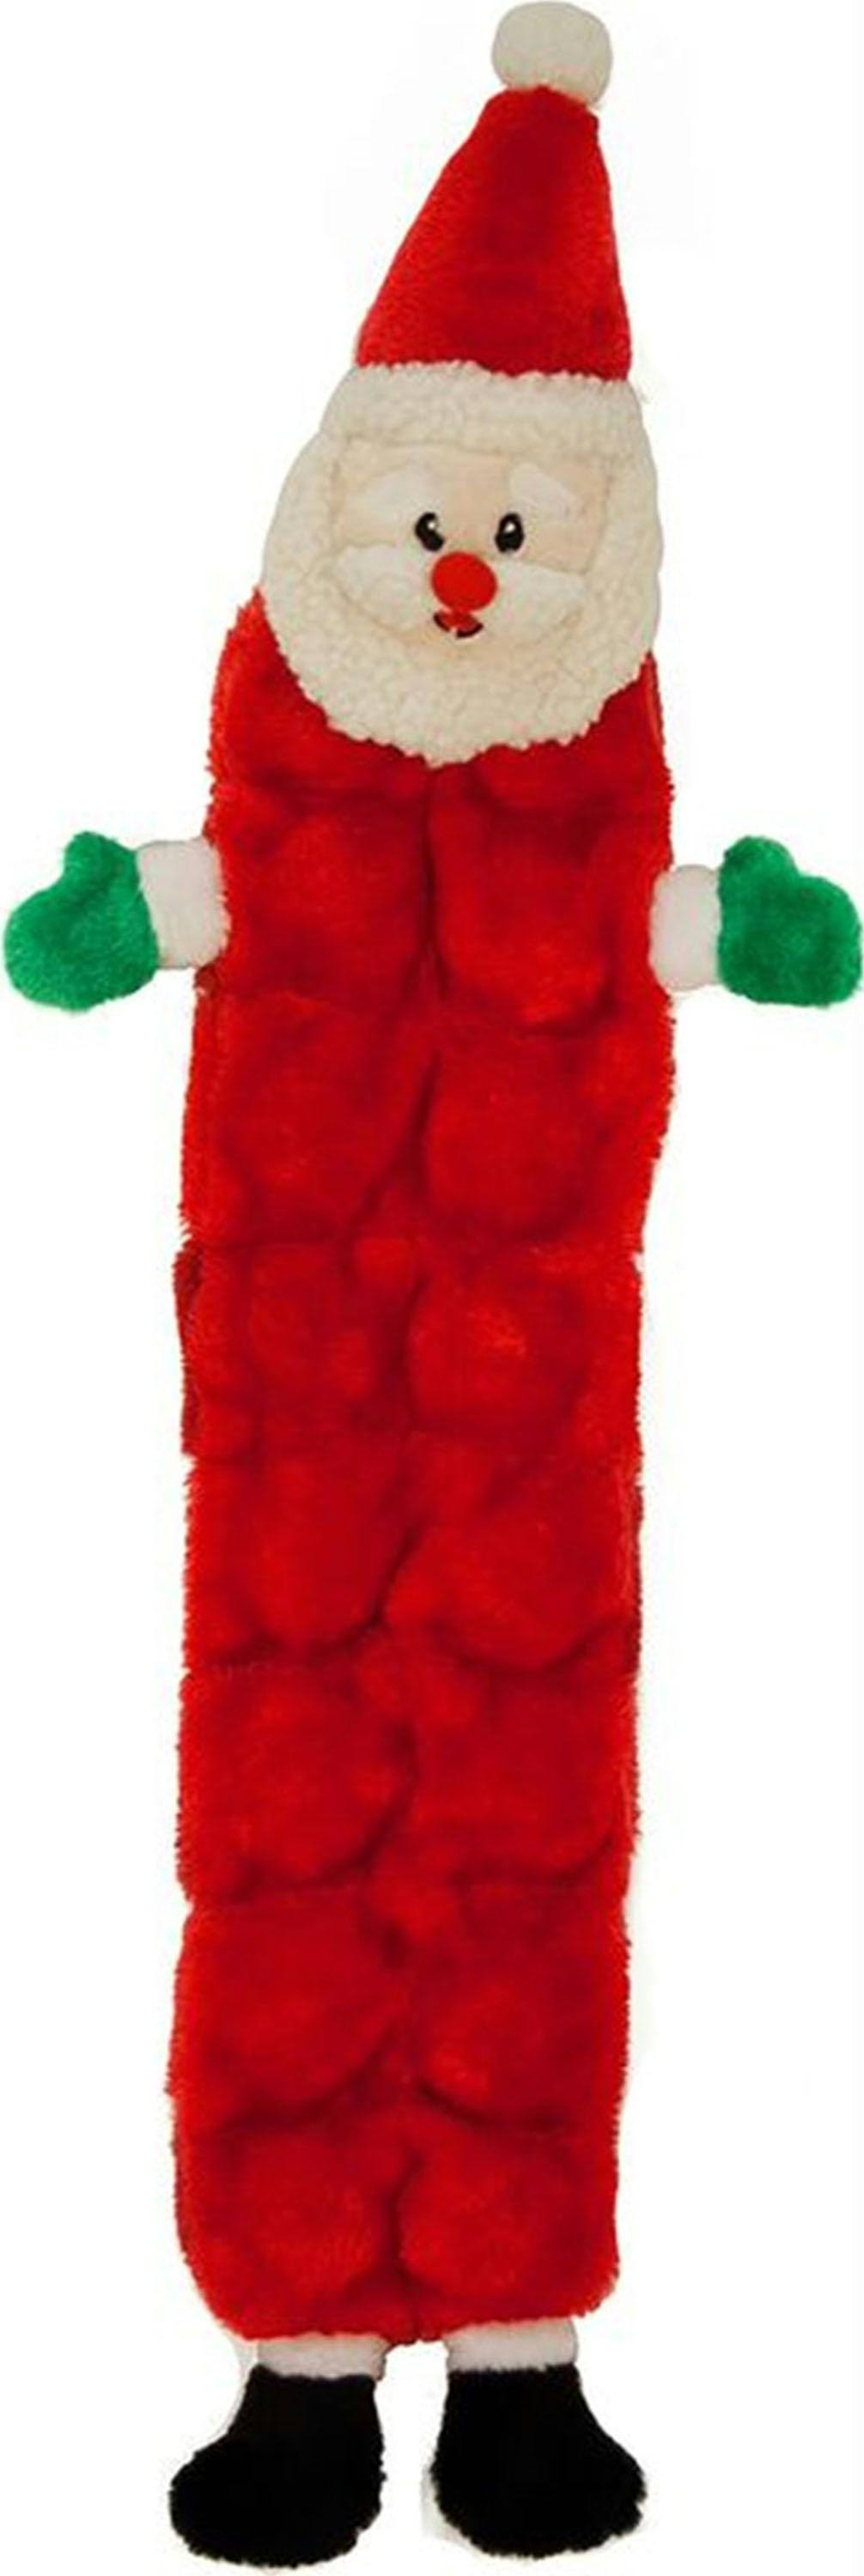 Outward Hound Mat Santa Holiday Plush Squeaky Dog Toy - Large, Red